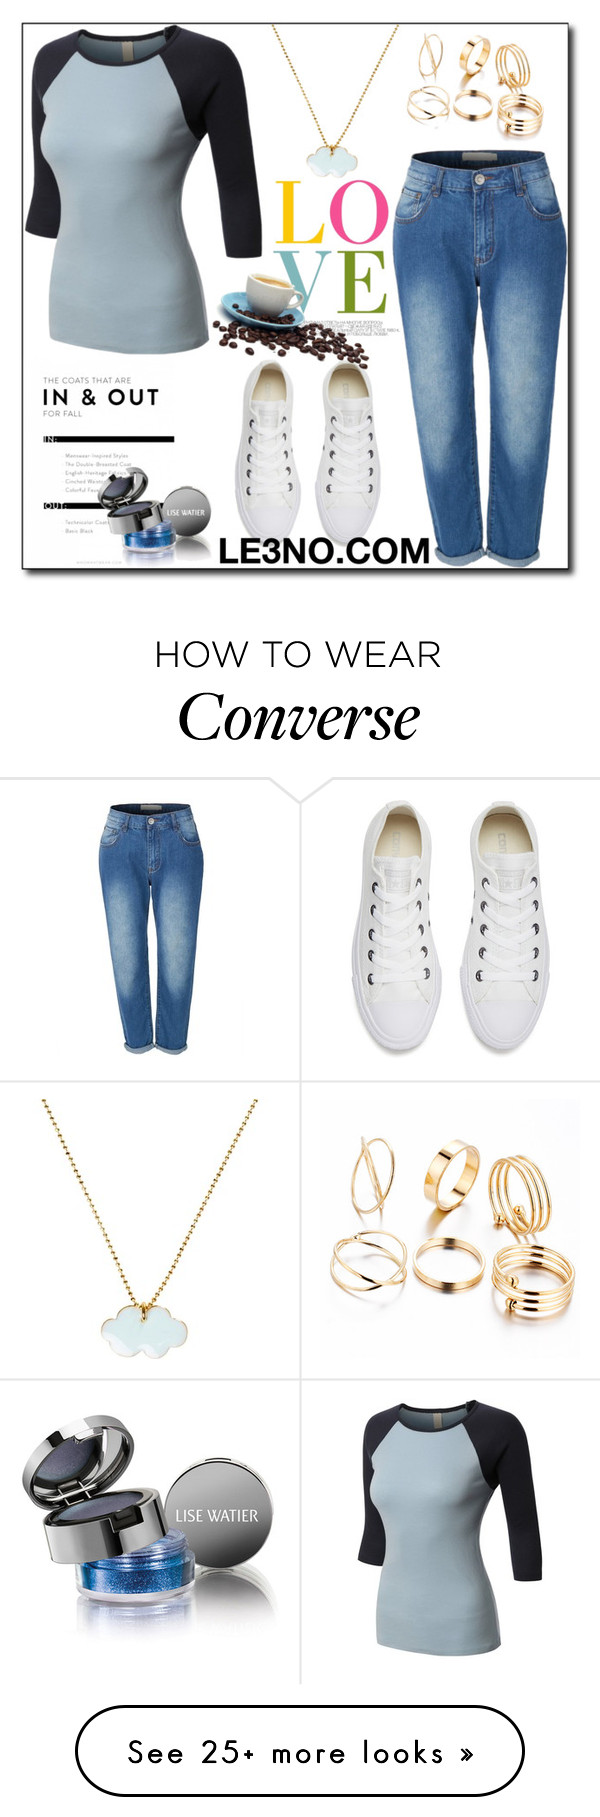 """LE3NO Clothing VI"" by esma178 on Polyvore featuring Converse, Conran, LE3NO, Lise Watier, le3no and le3noclothing"